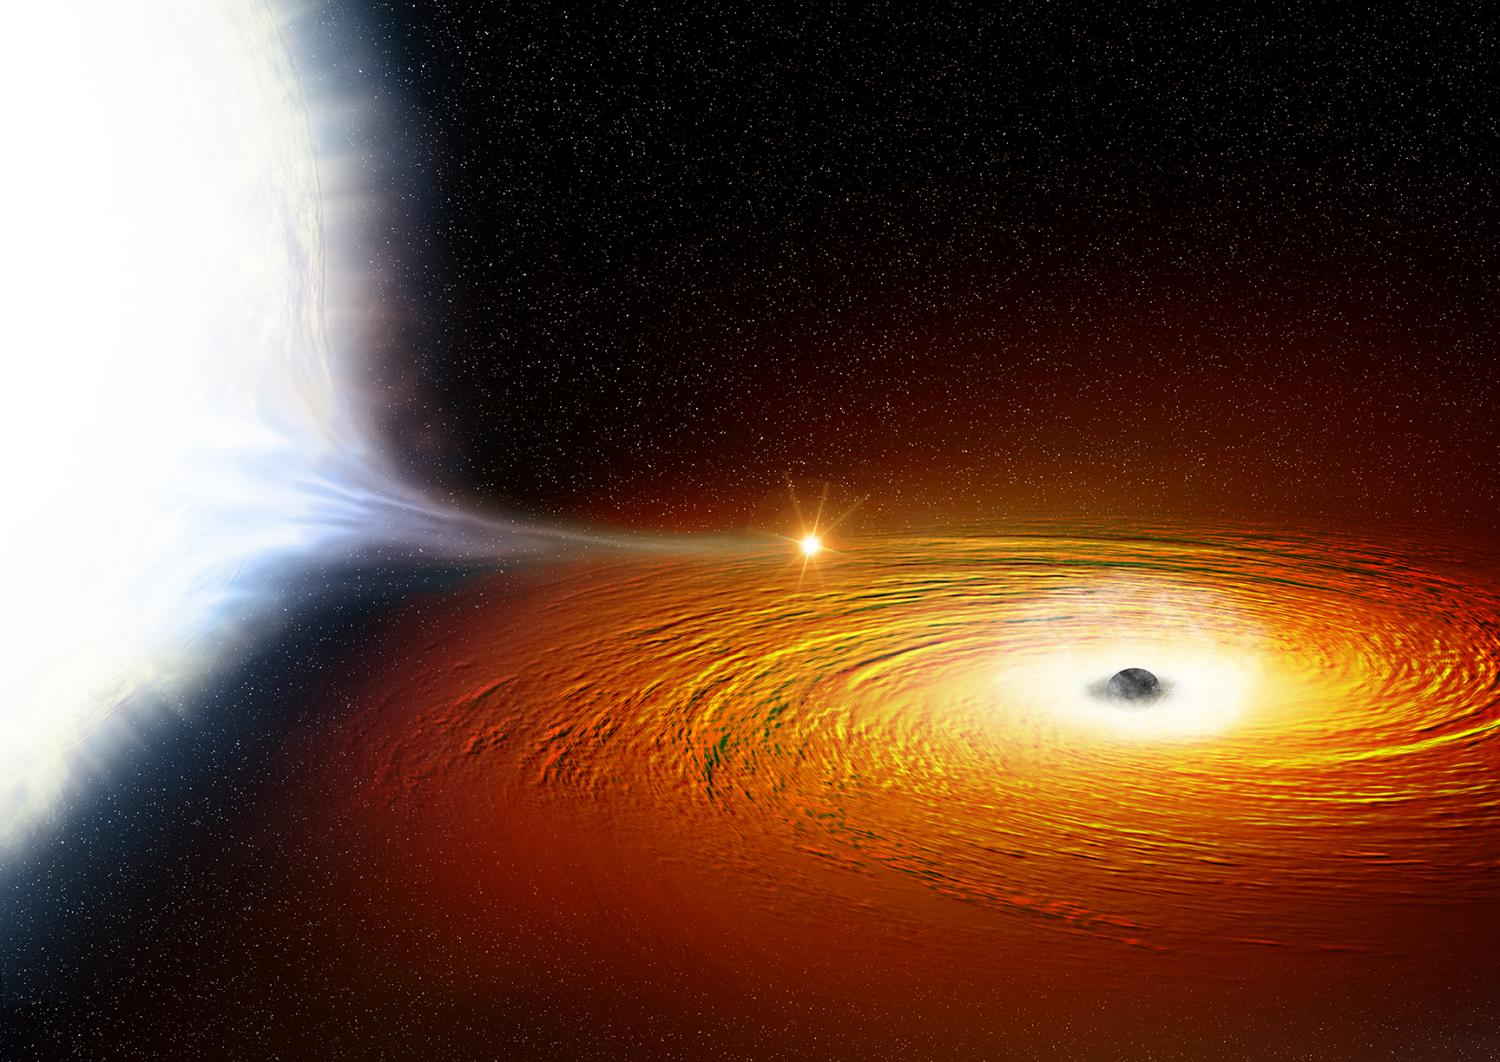 Star and black hole spotted in tight orbital dance